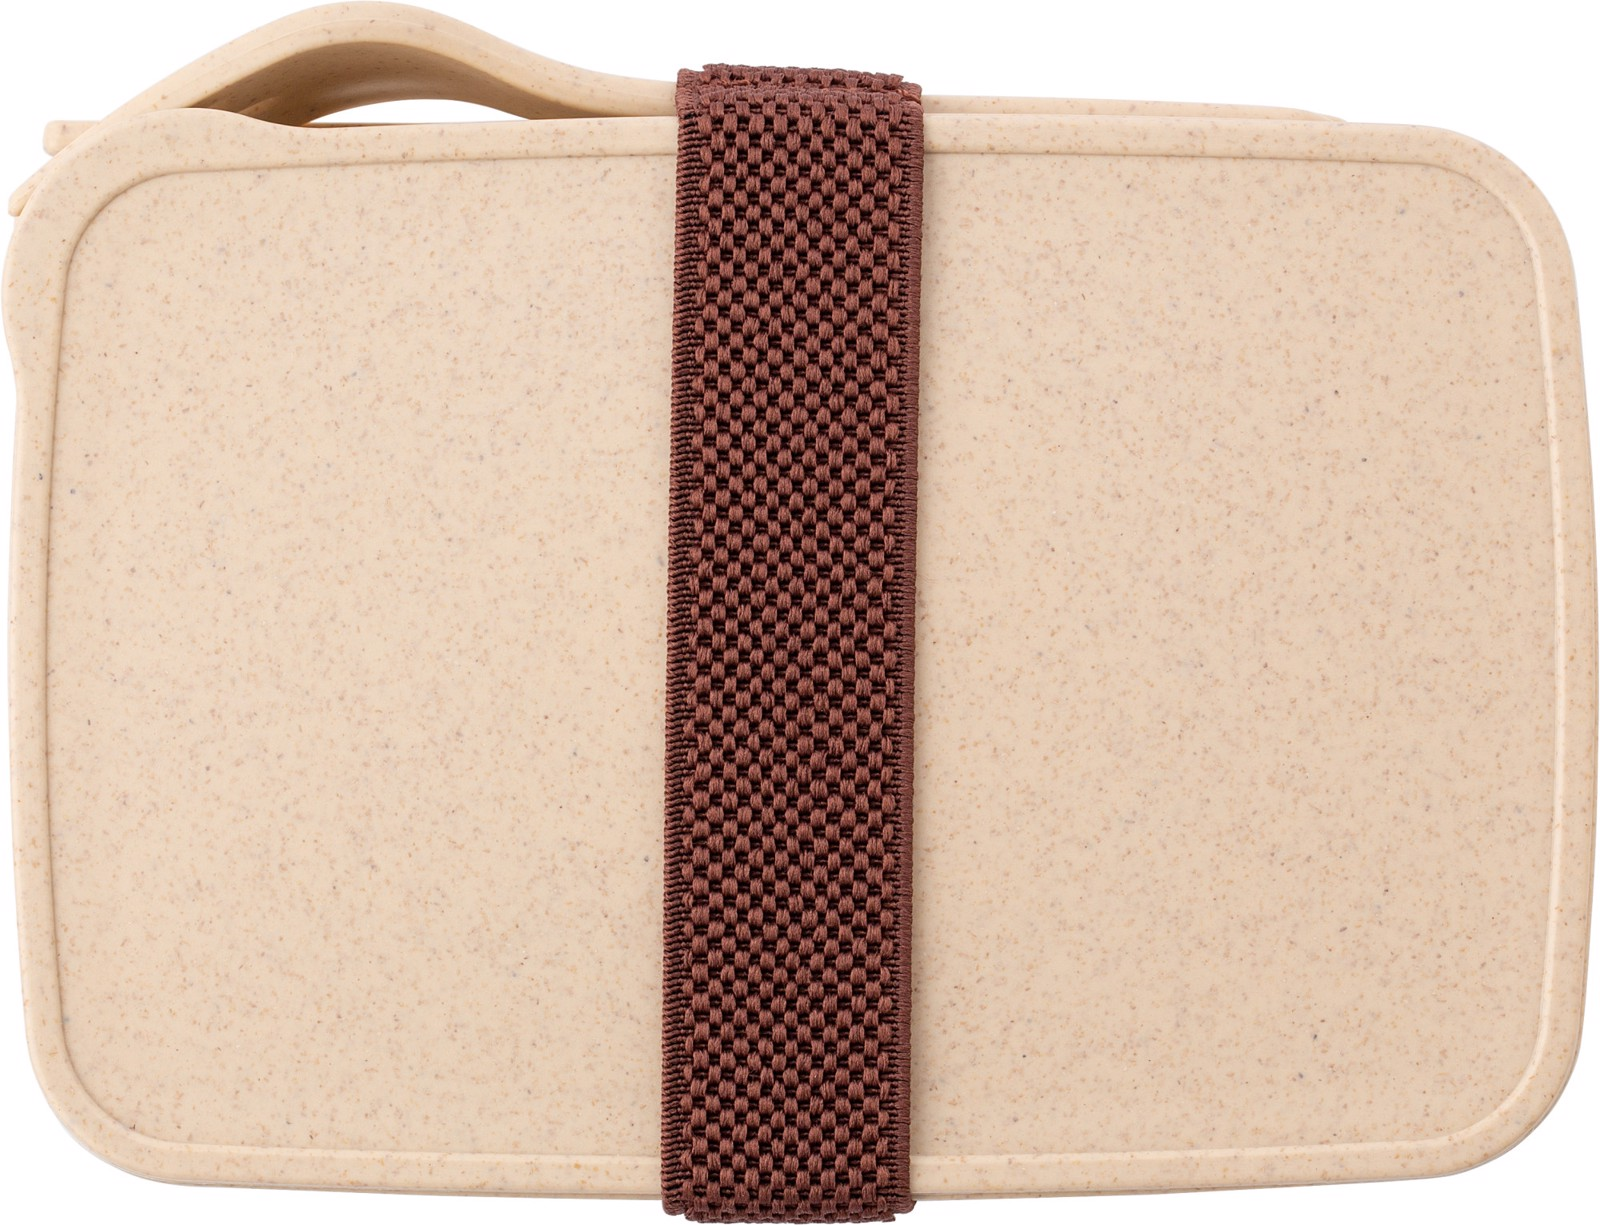 PP and wheat straw lunchbox - Brown